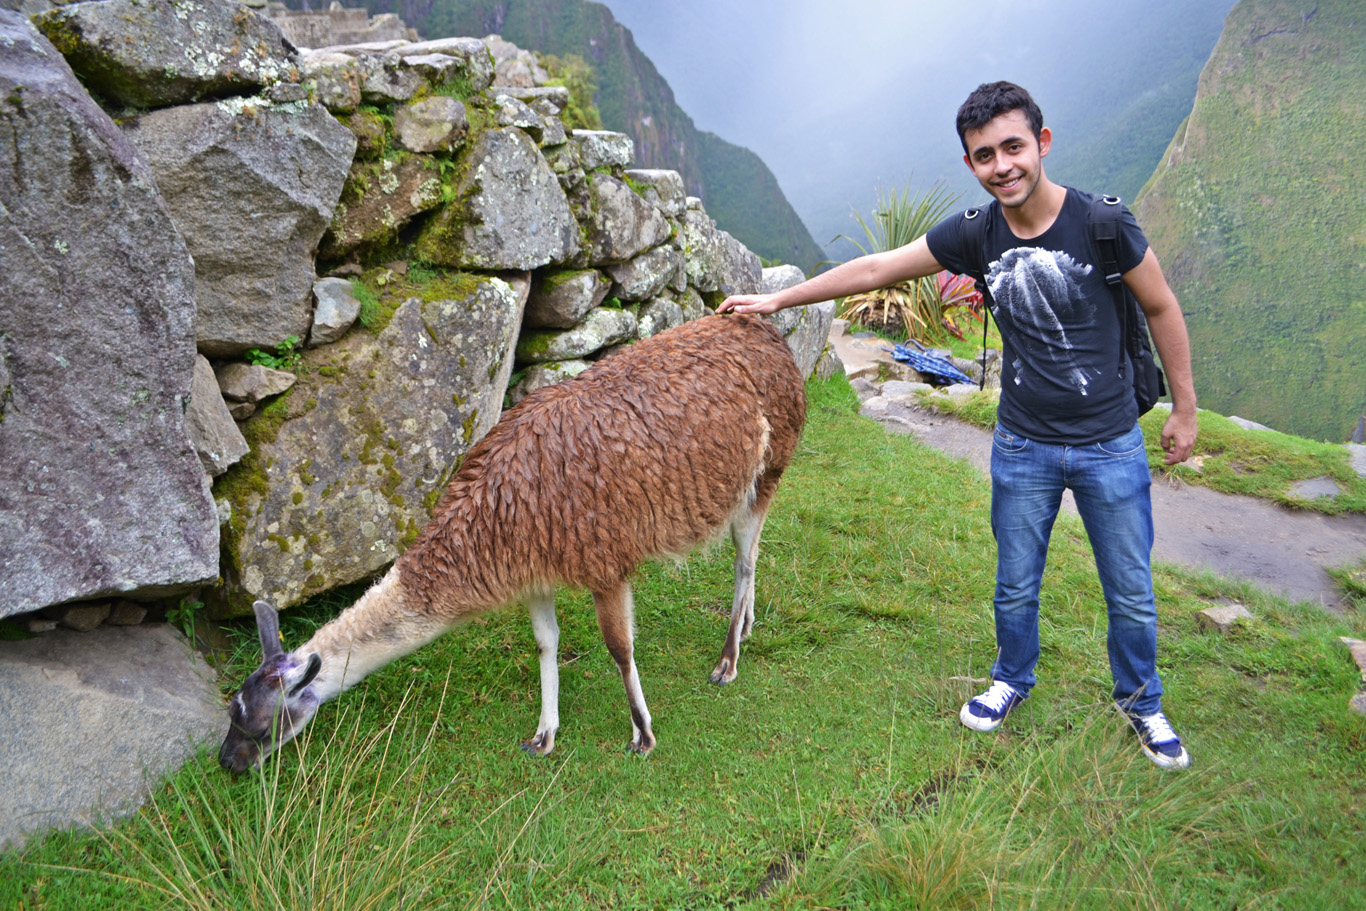 Lama    g  razing      at Machu Picchu